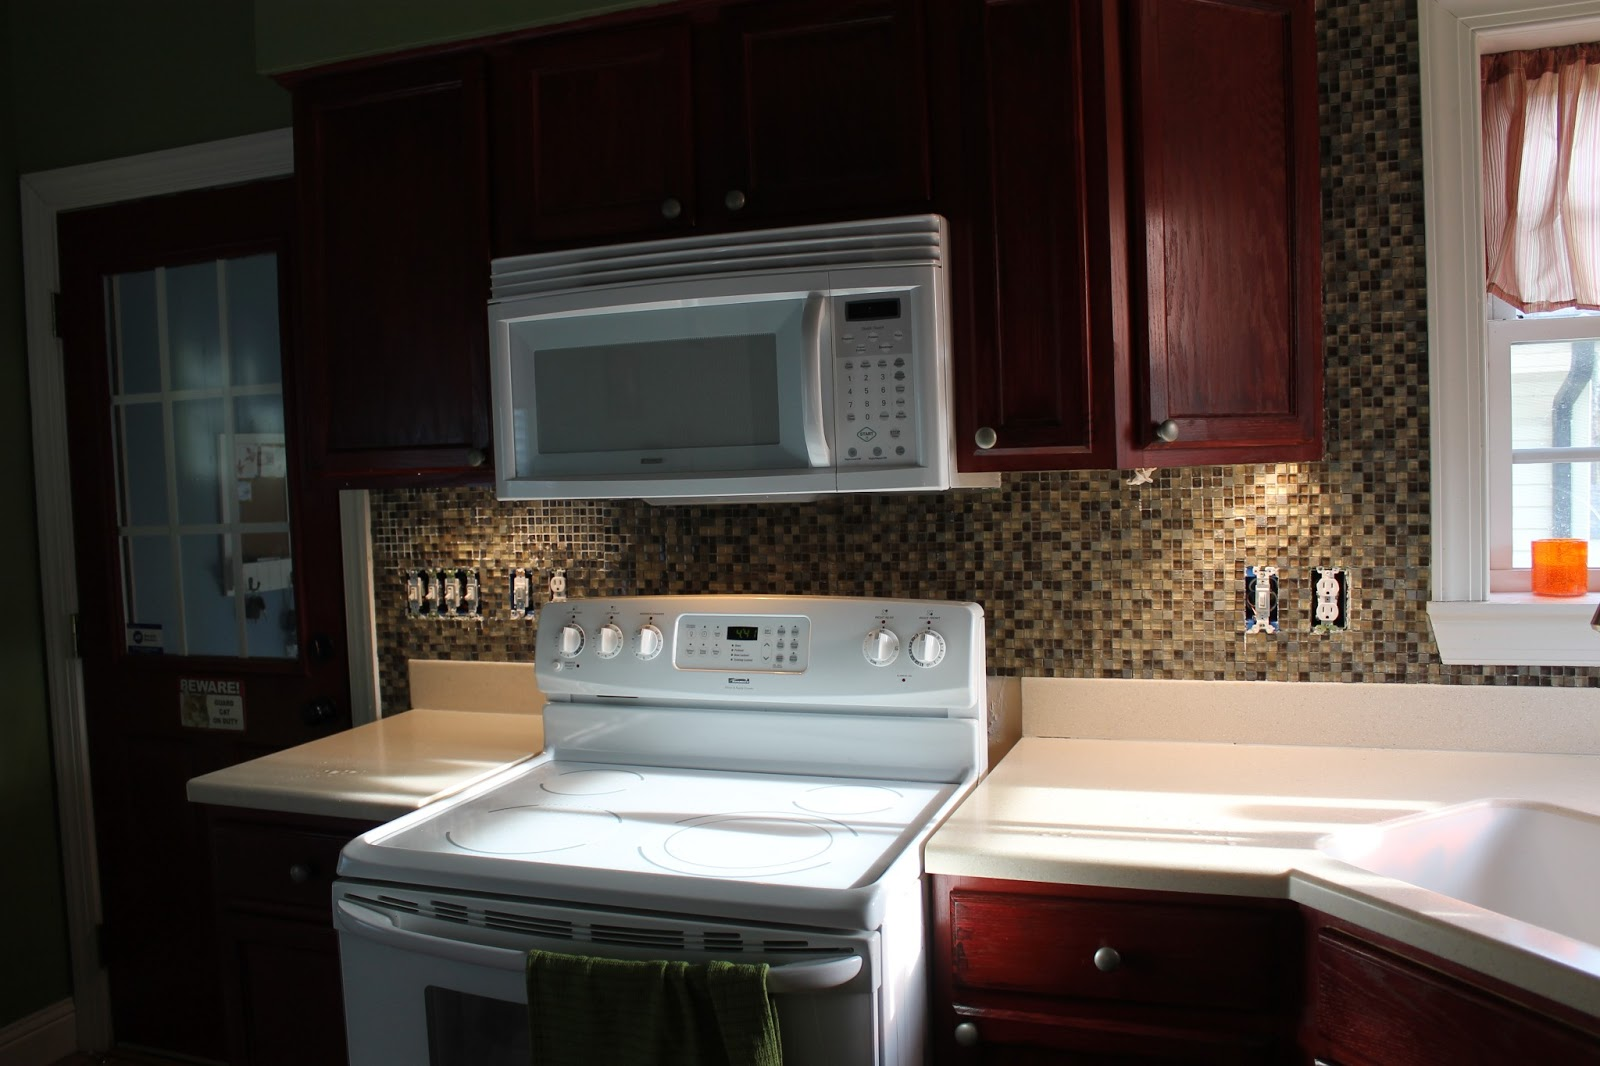 Adhesive Glass Tile Backsplash